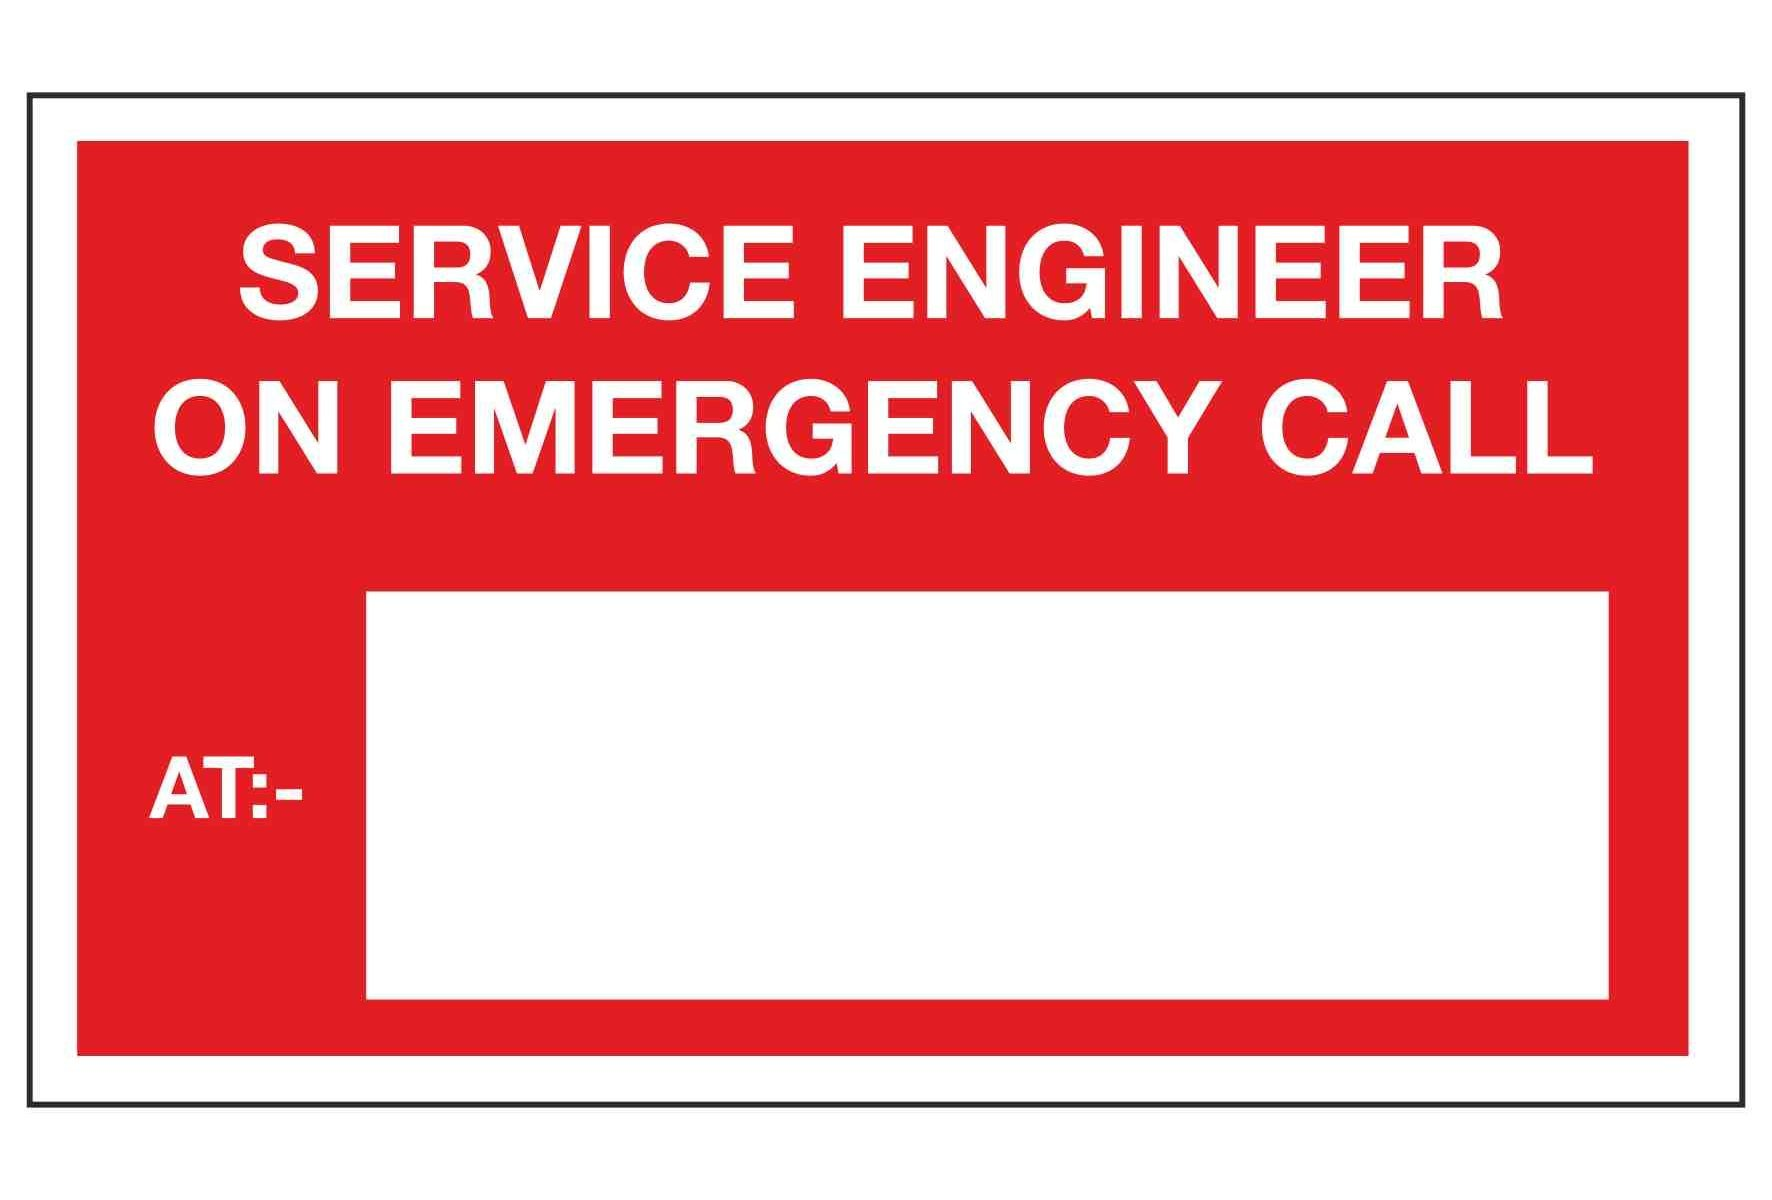 SERVICE ENGINEER ON EMERGENCY CALL AT -